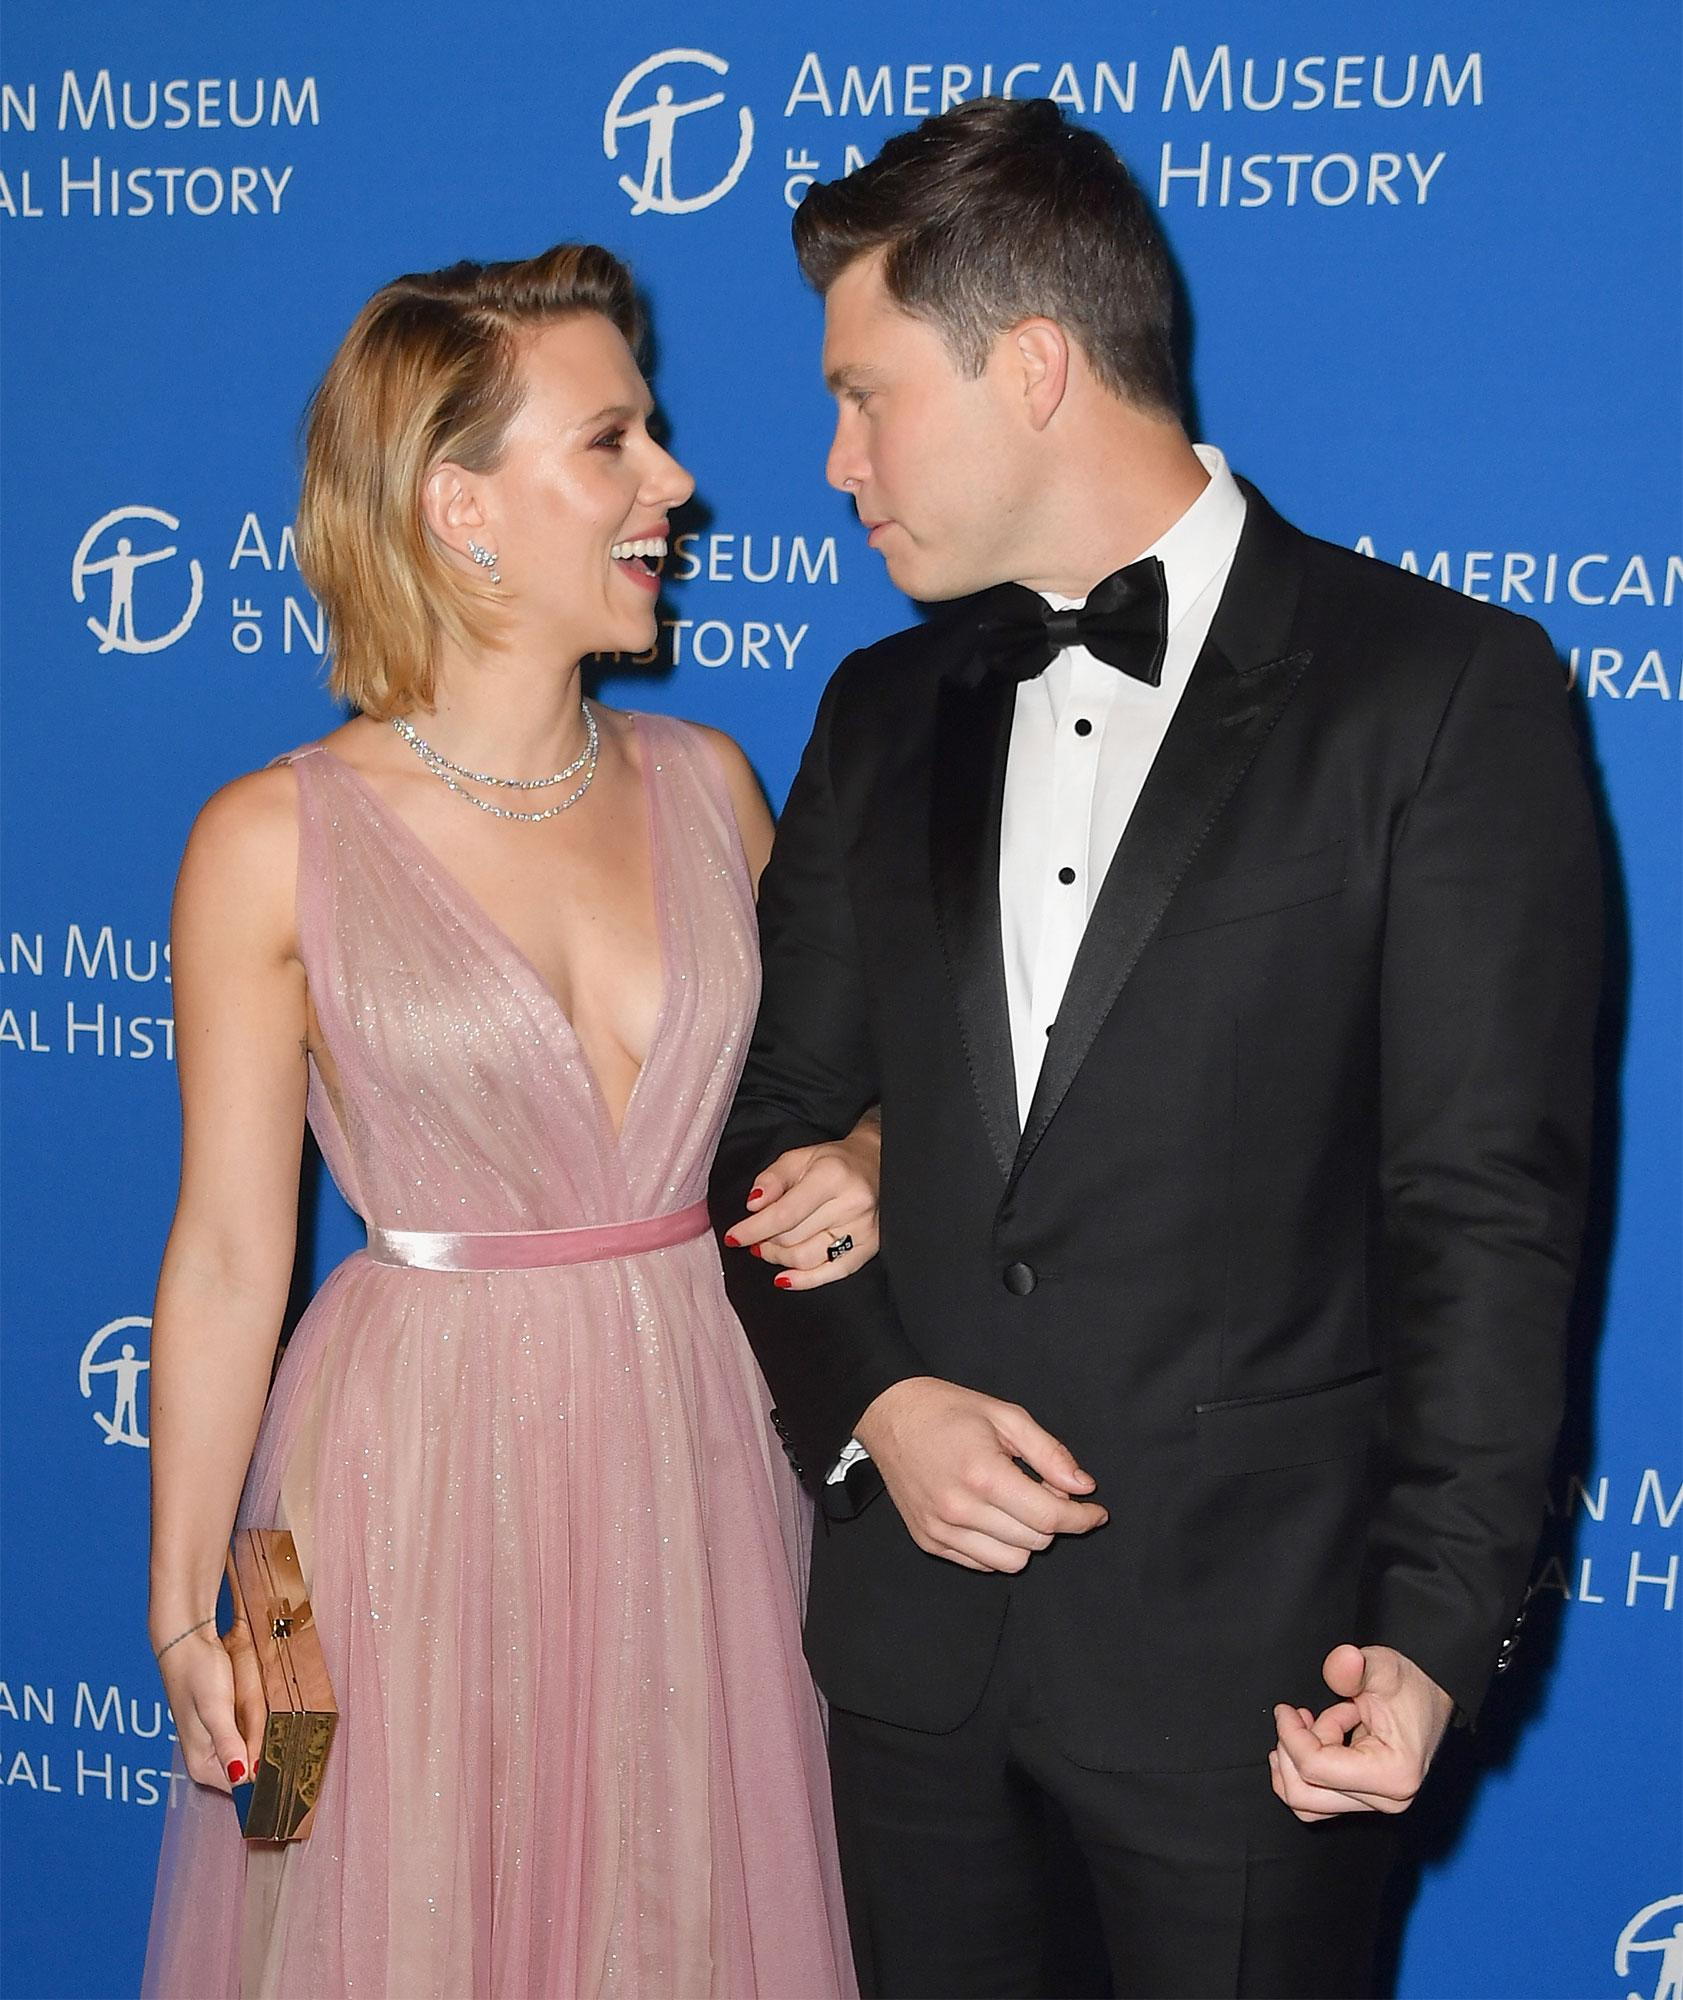 Scarlett Johansson And Colin Jost Have Sweet Date Night At Same Gala Where They Went Public